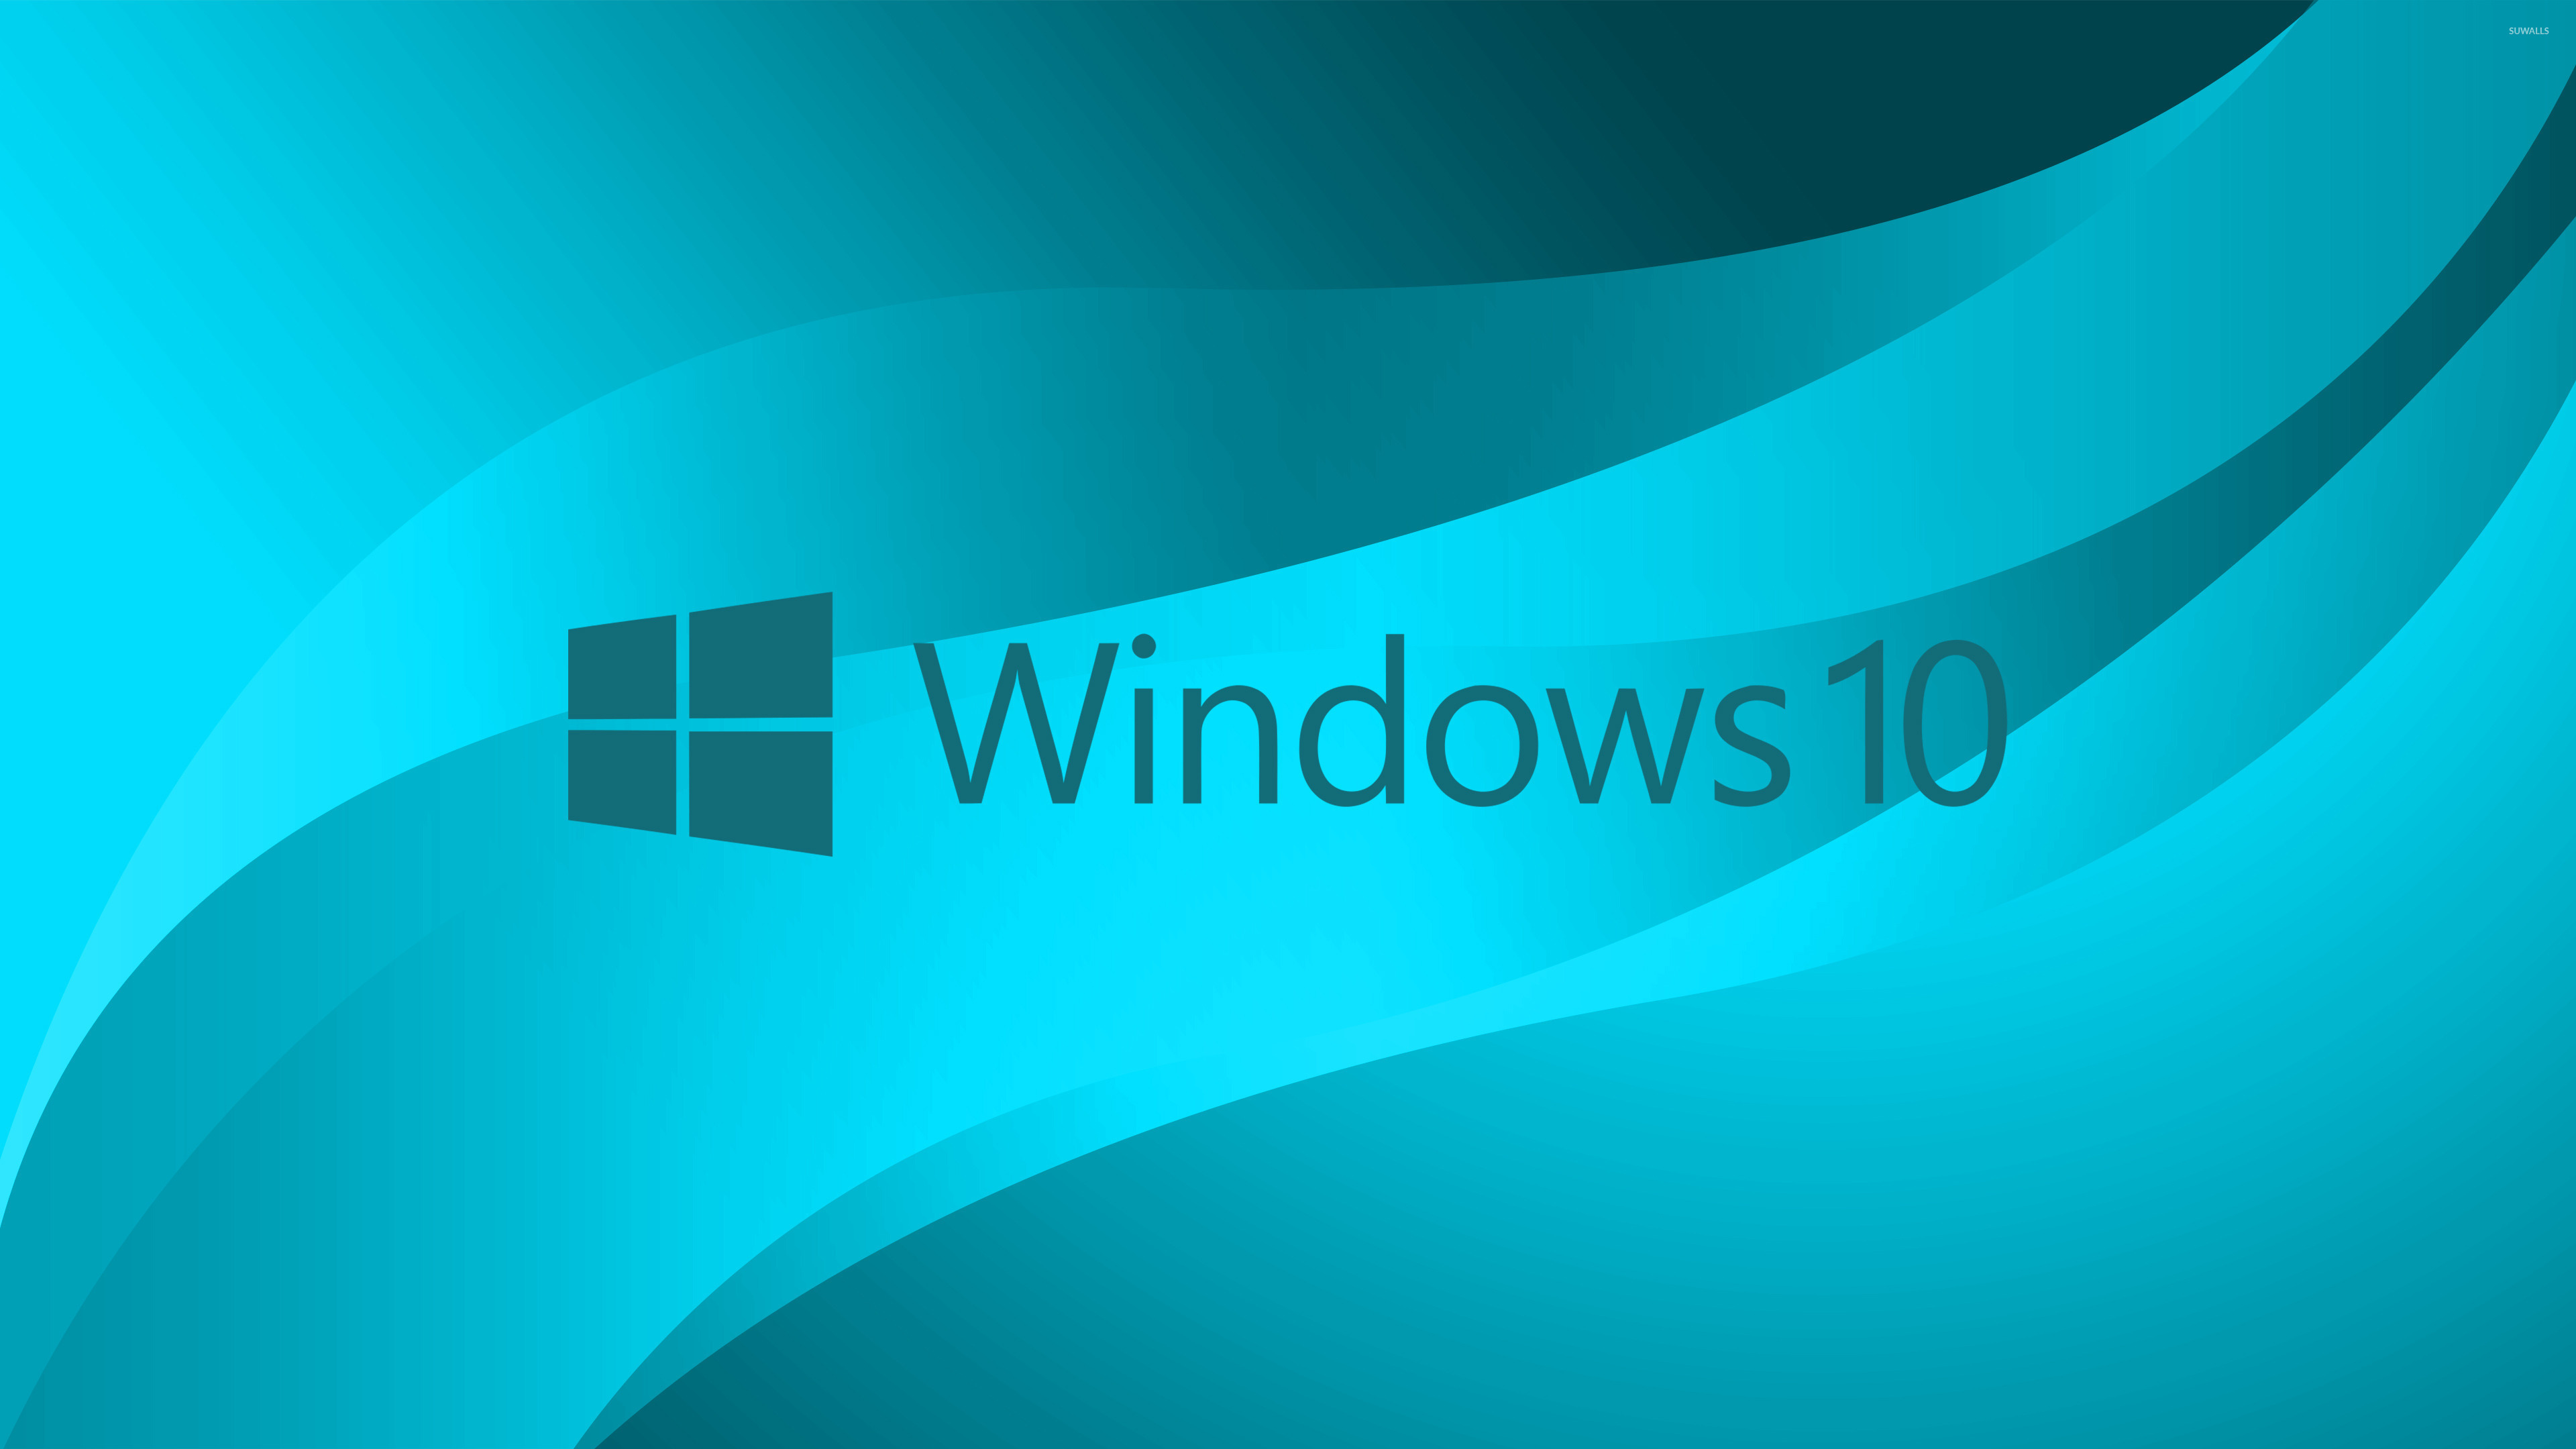 Windows 10 Blue Text Logo On Light Wallpaper